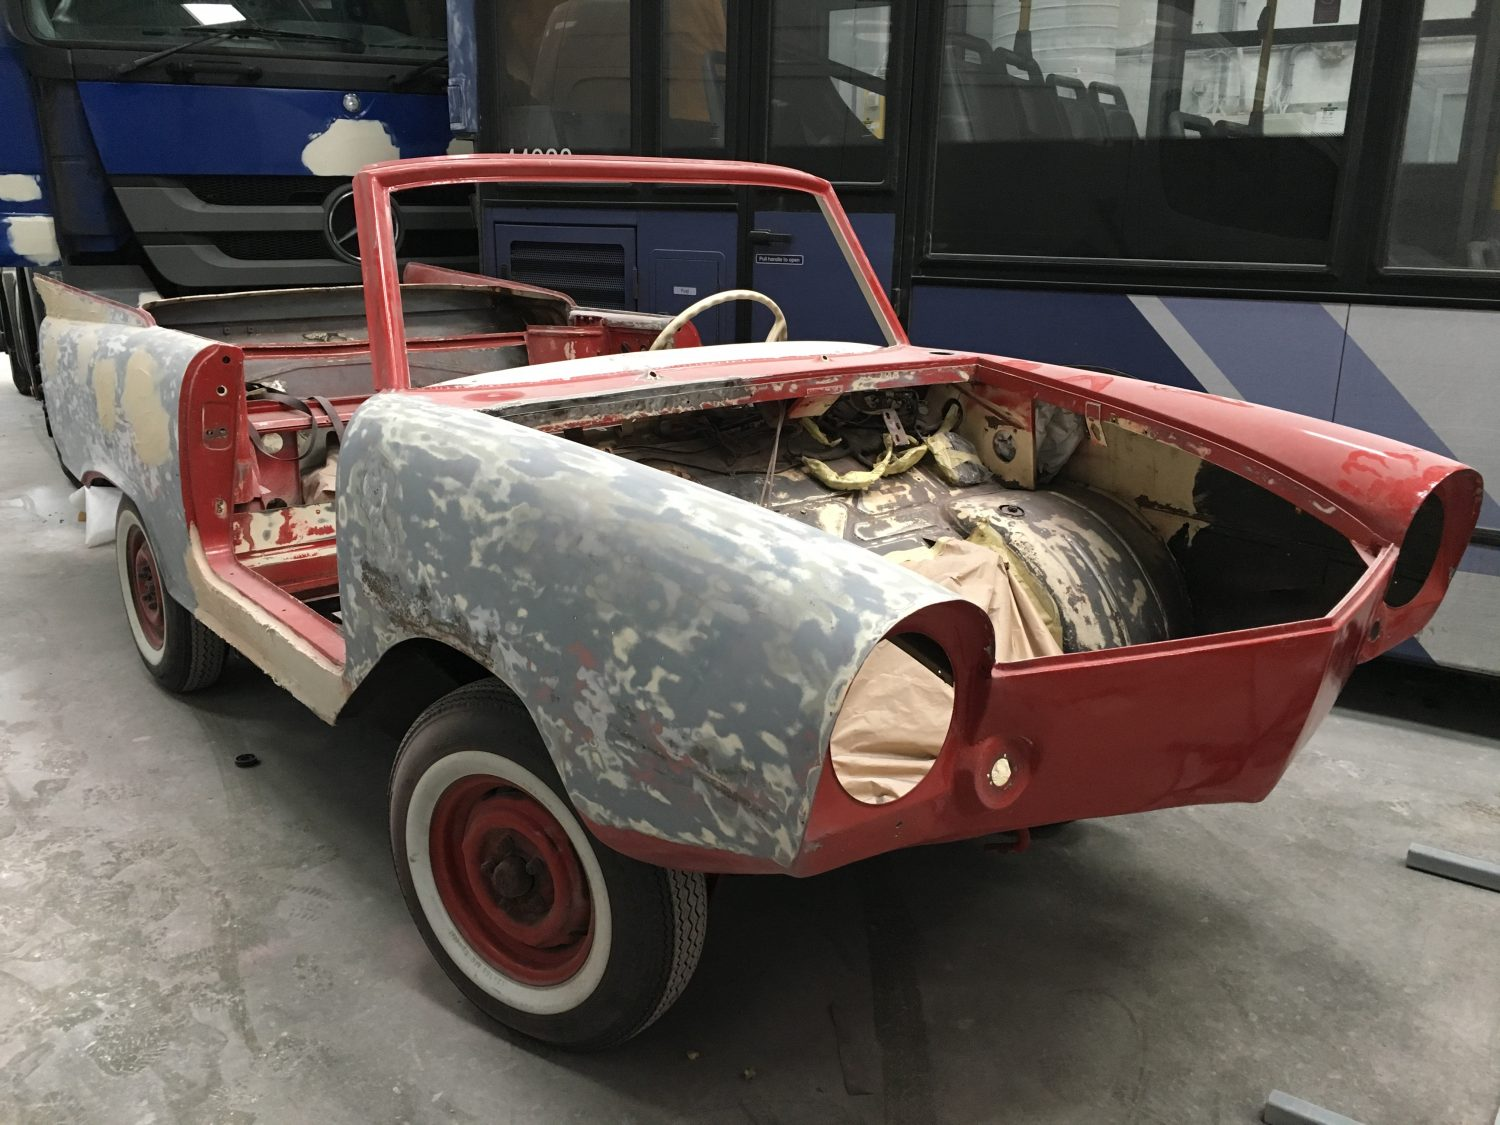 Preparing the body of our 1965 Amphicar